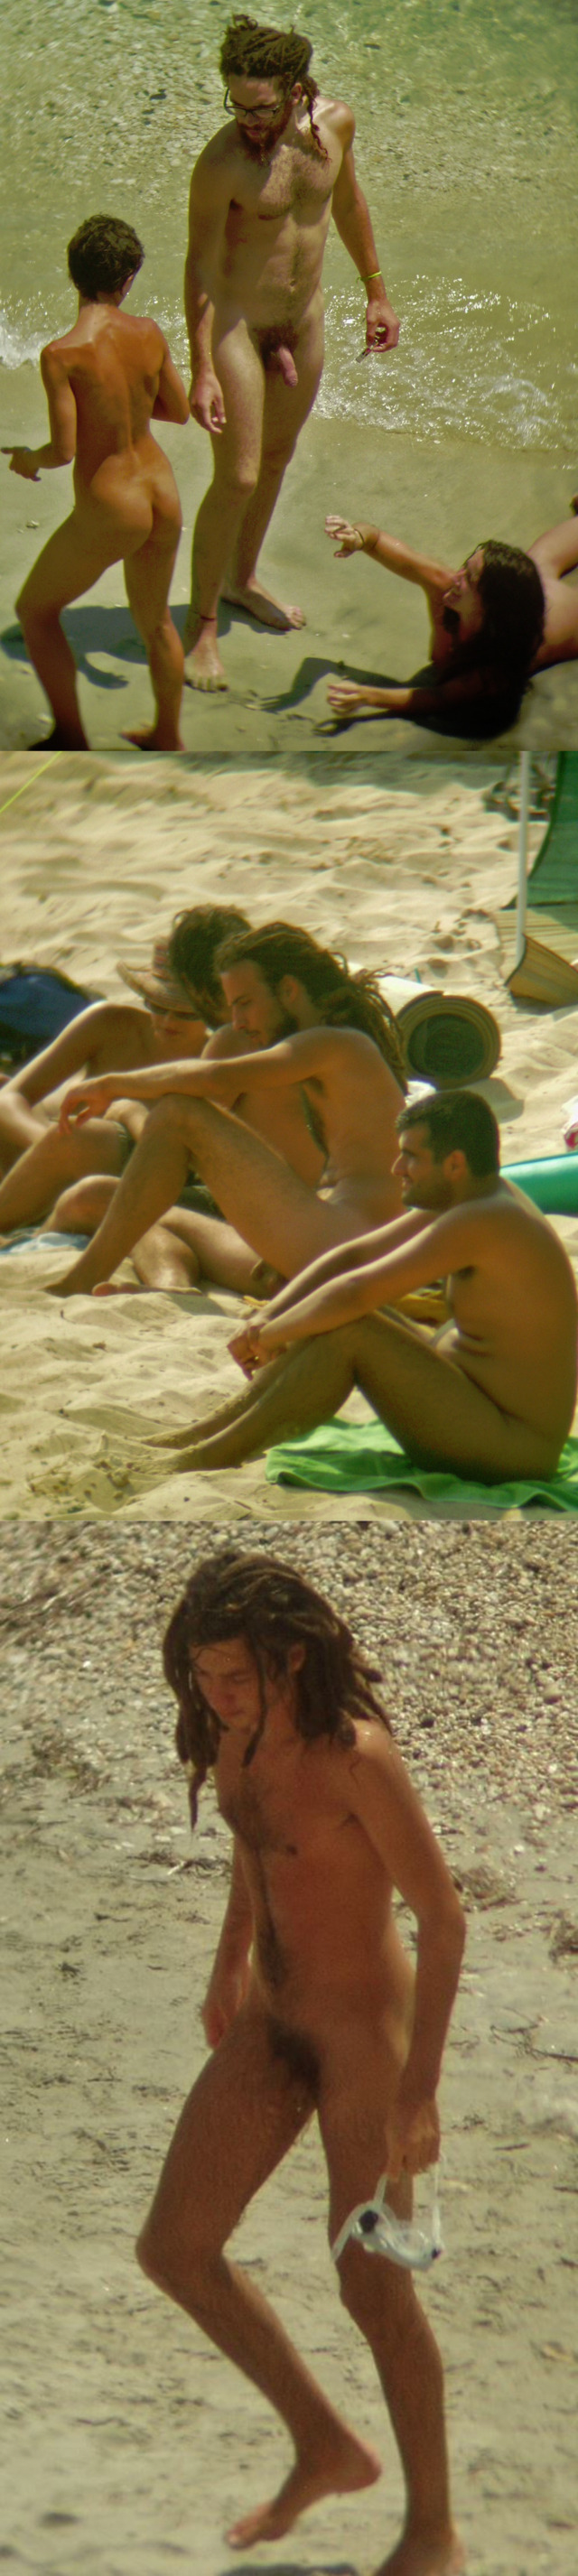 nude-beach-guys-long-hair